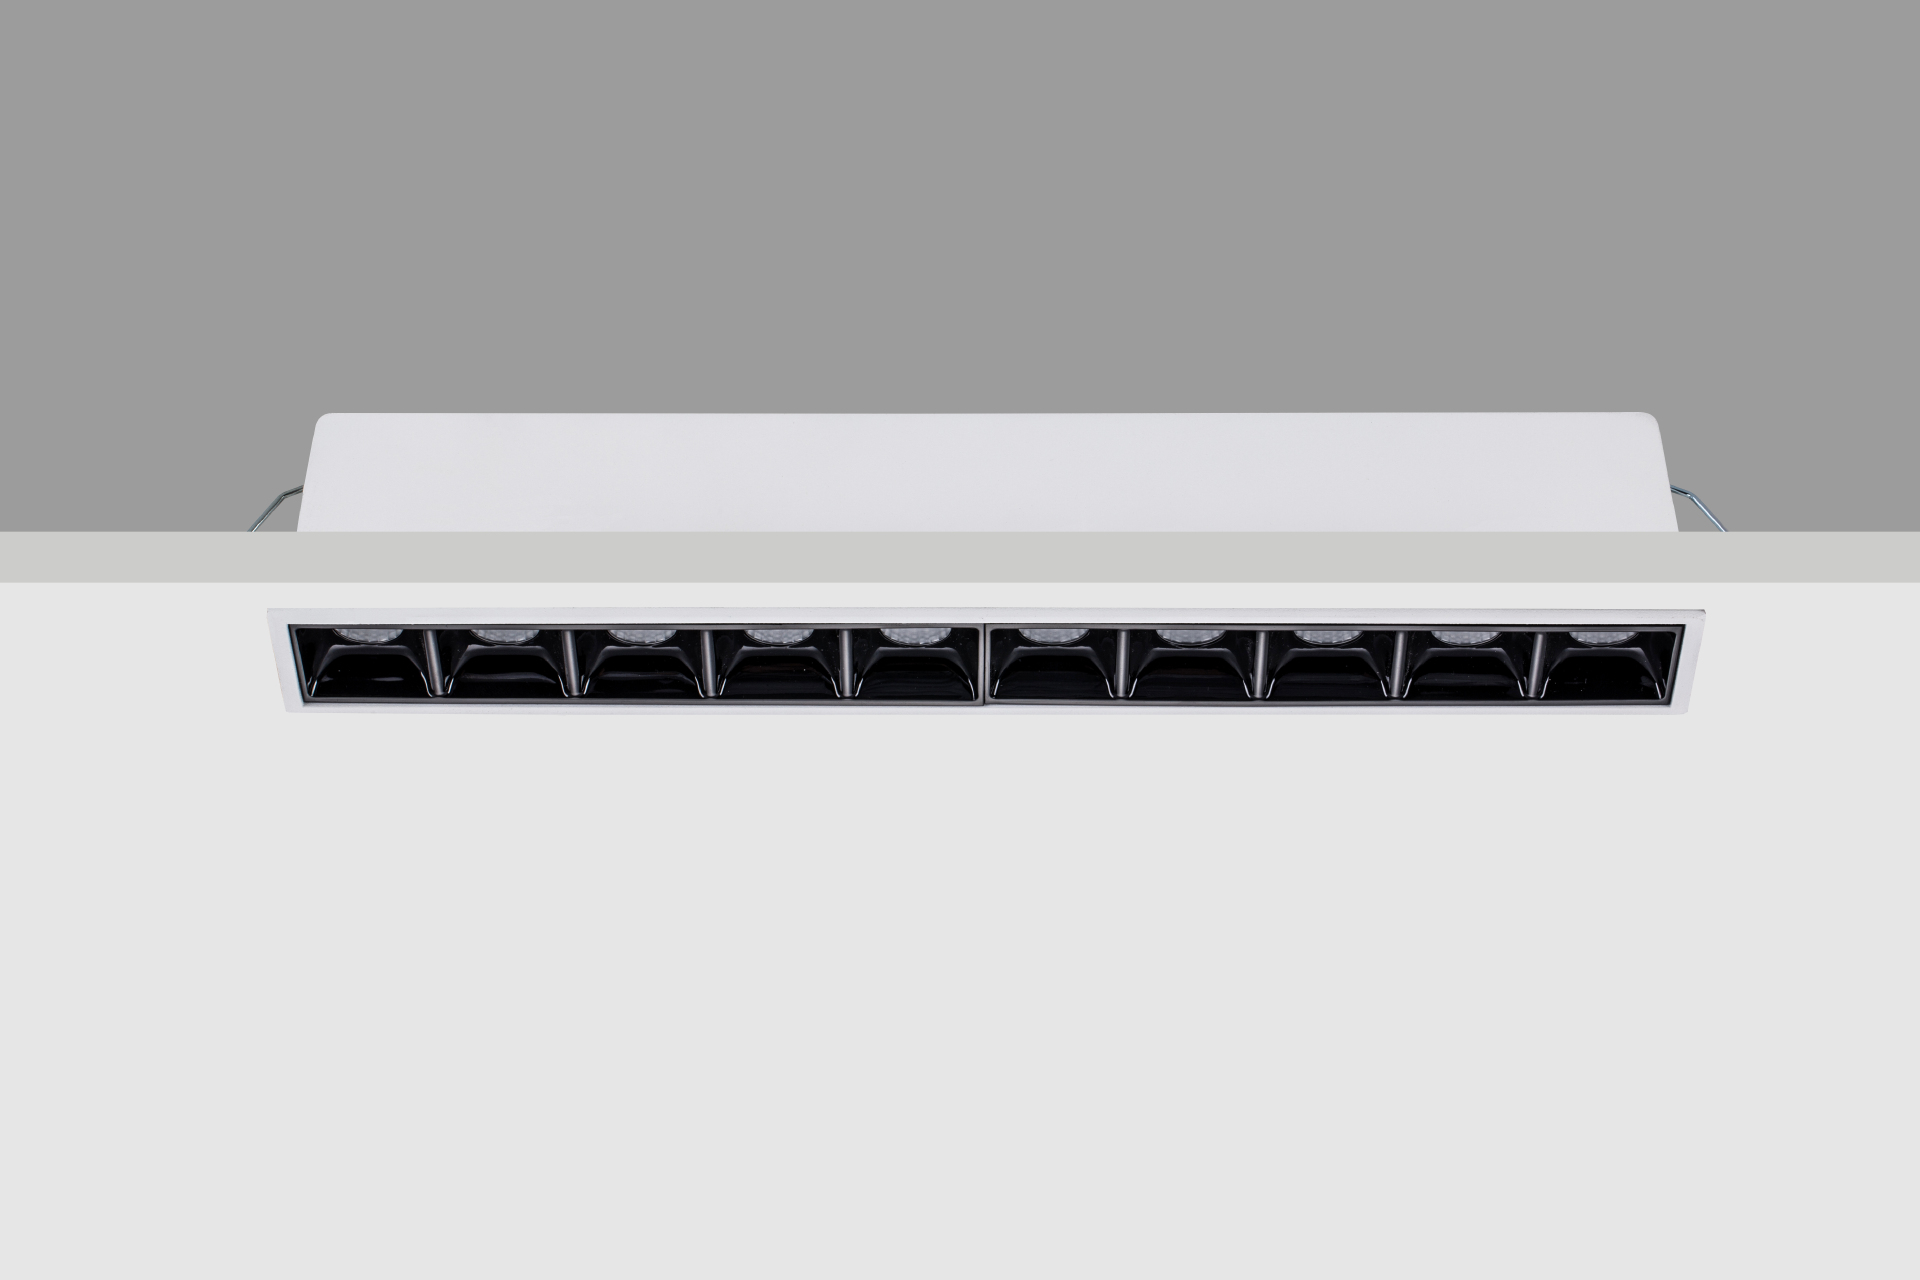 Frameless Linear LED Downlight 10x2W